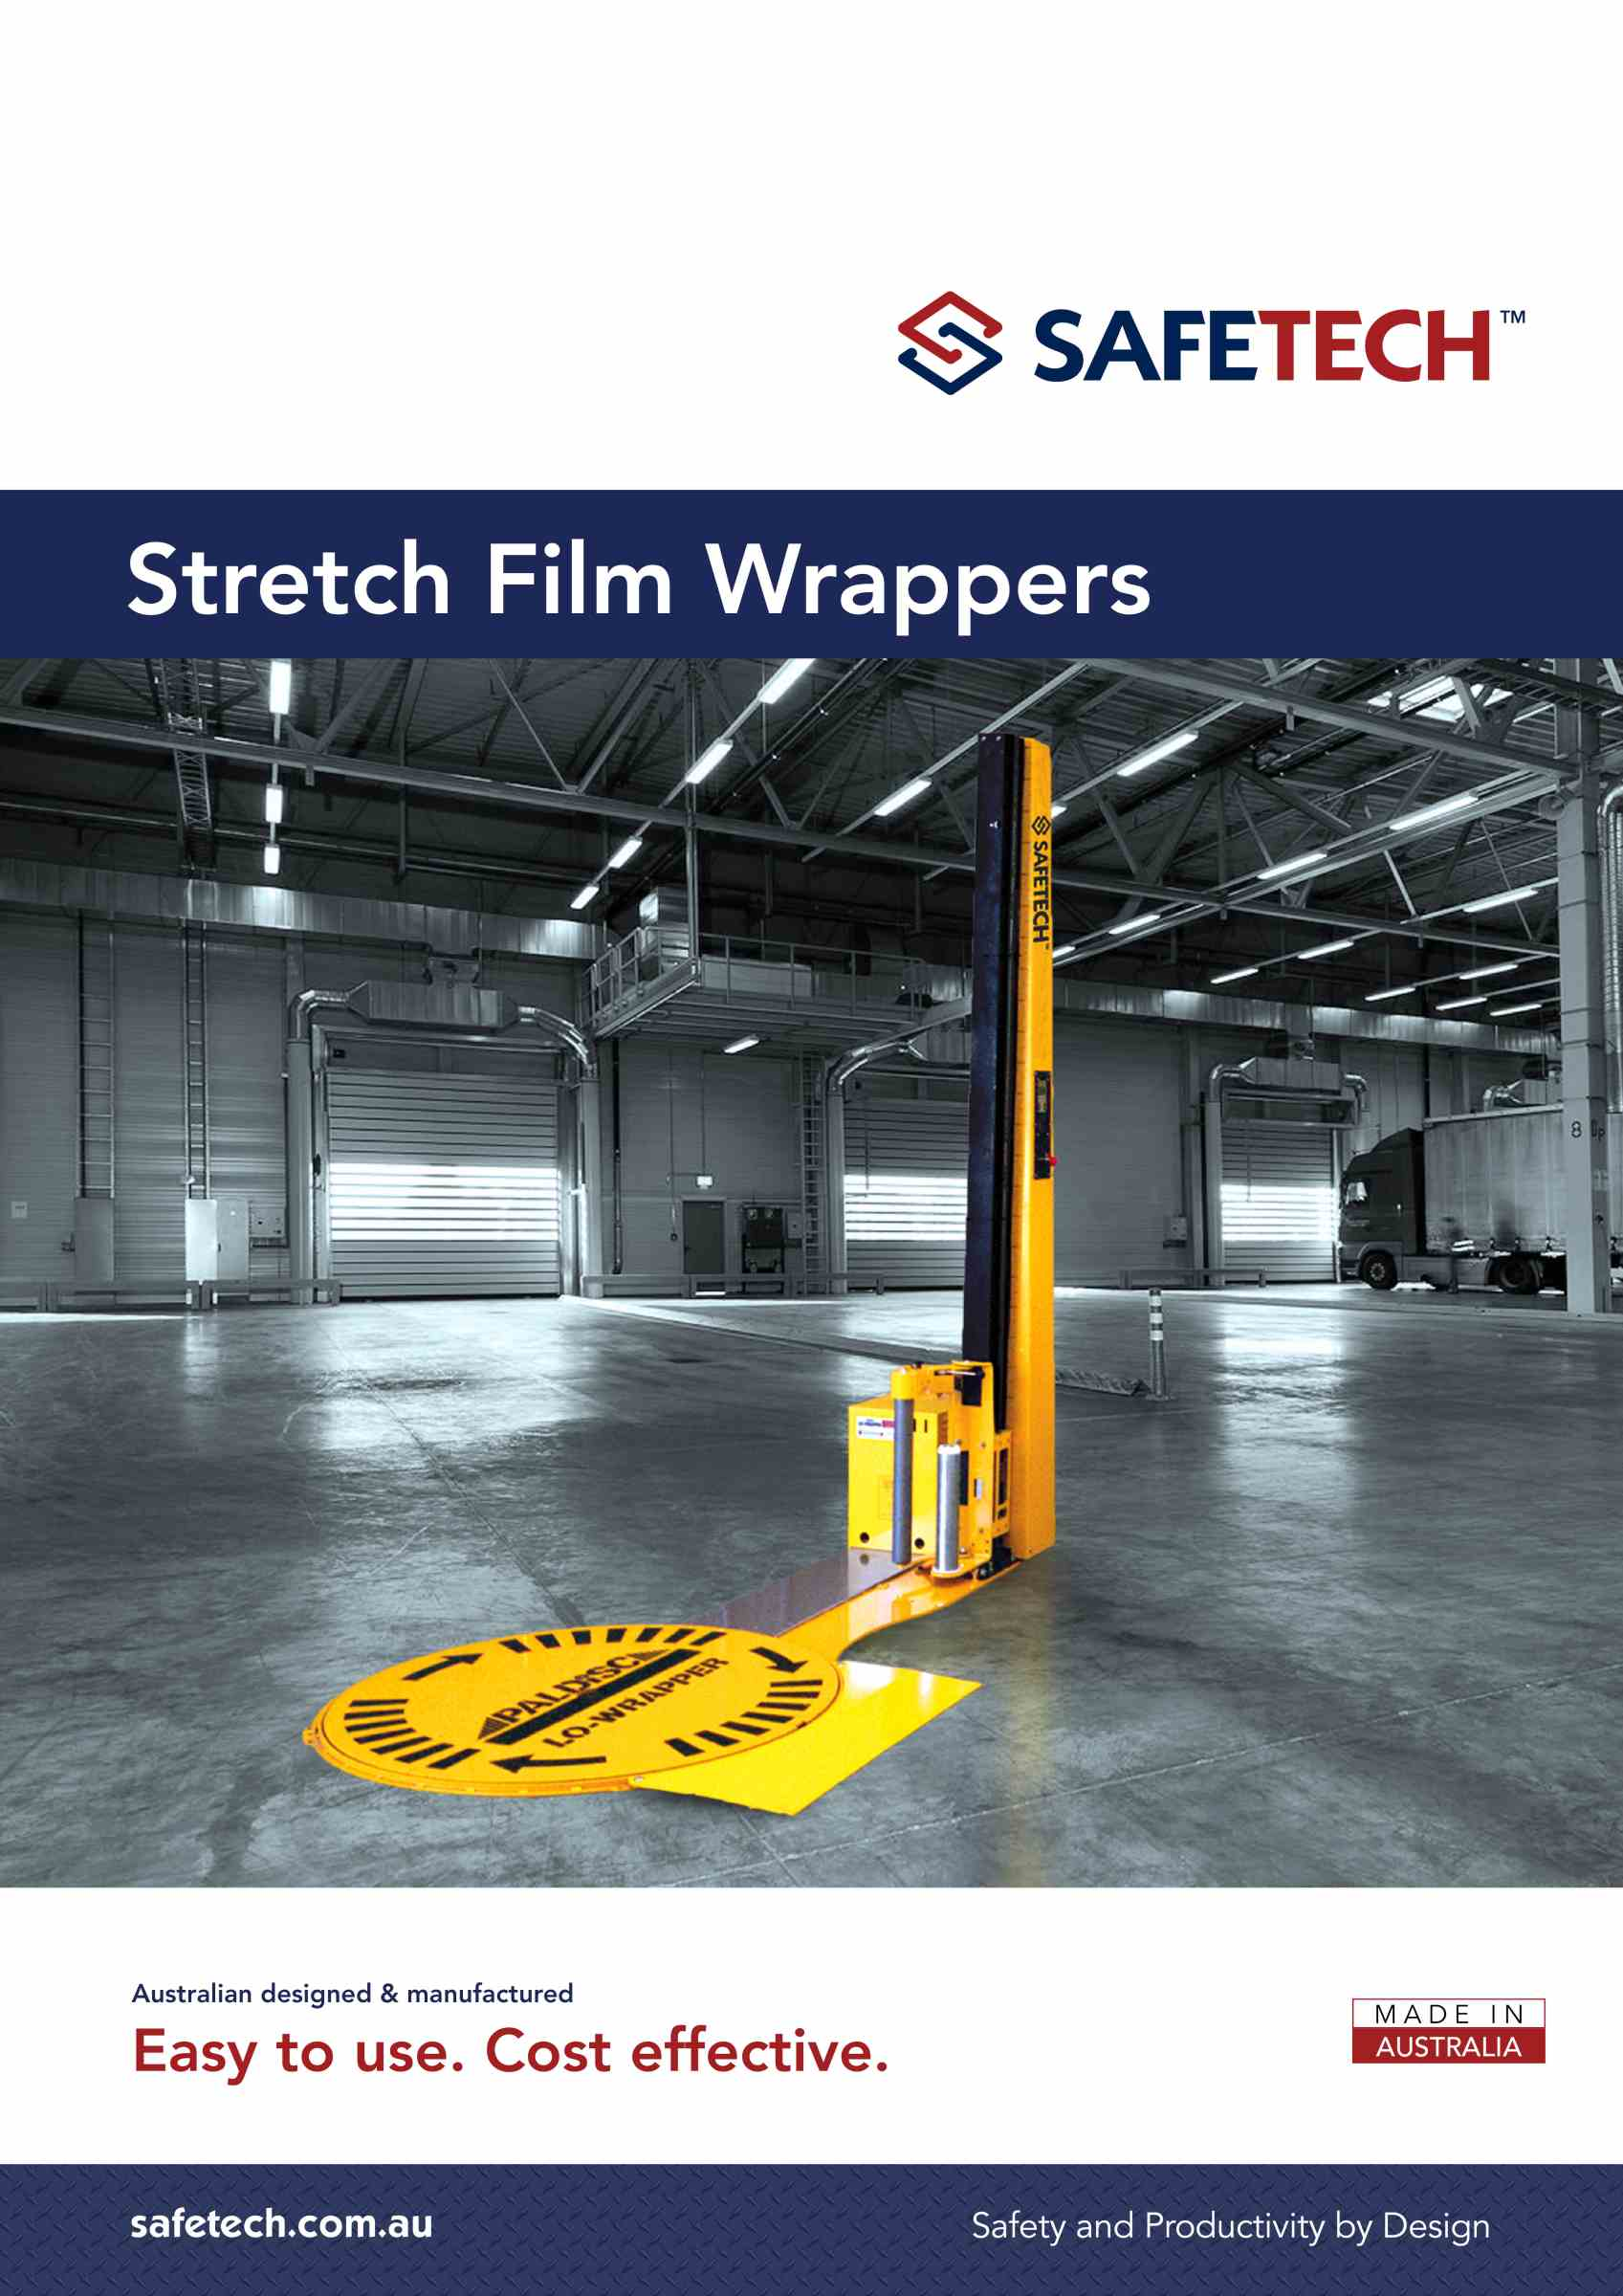 Safetech FilmWrappers A4